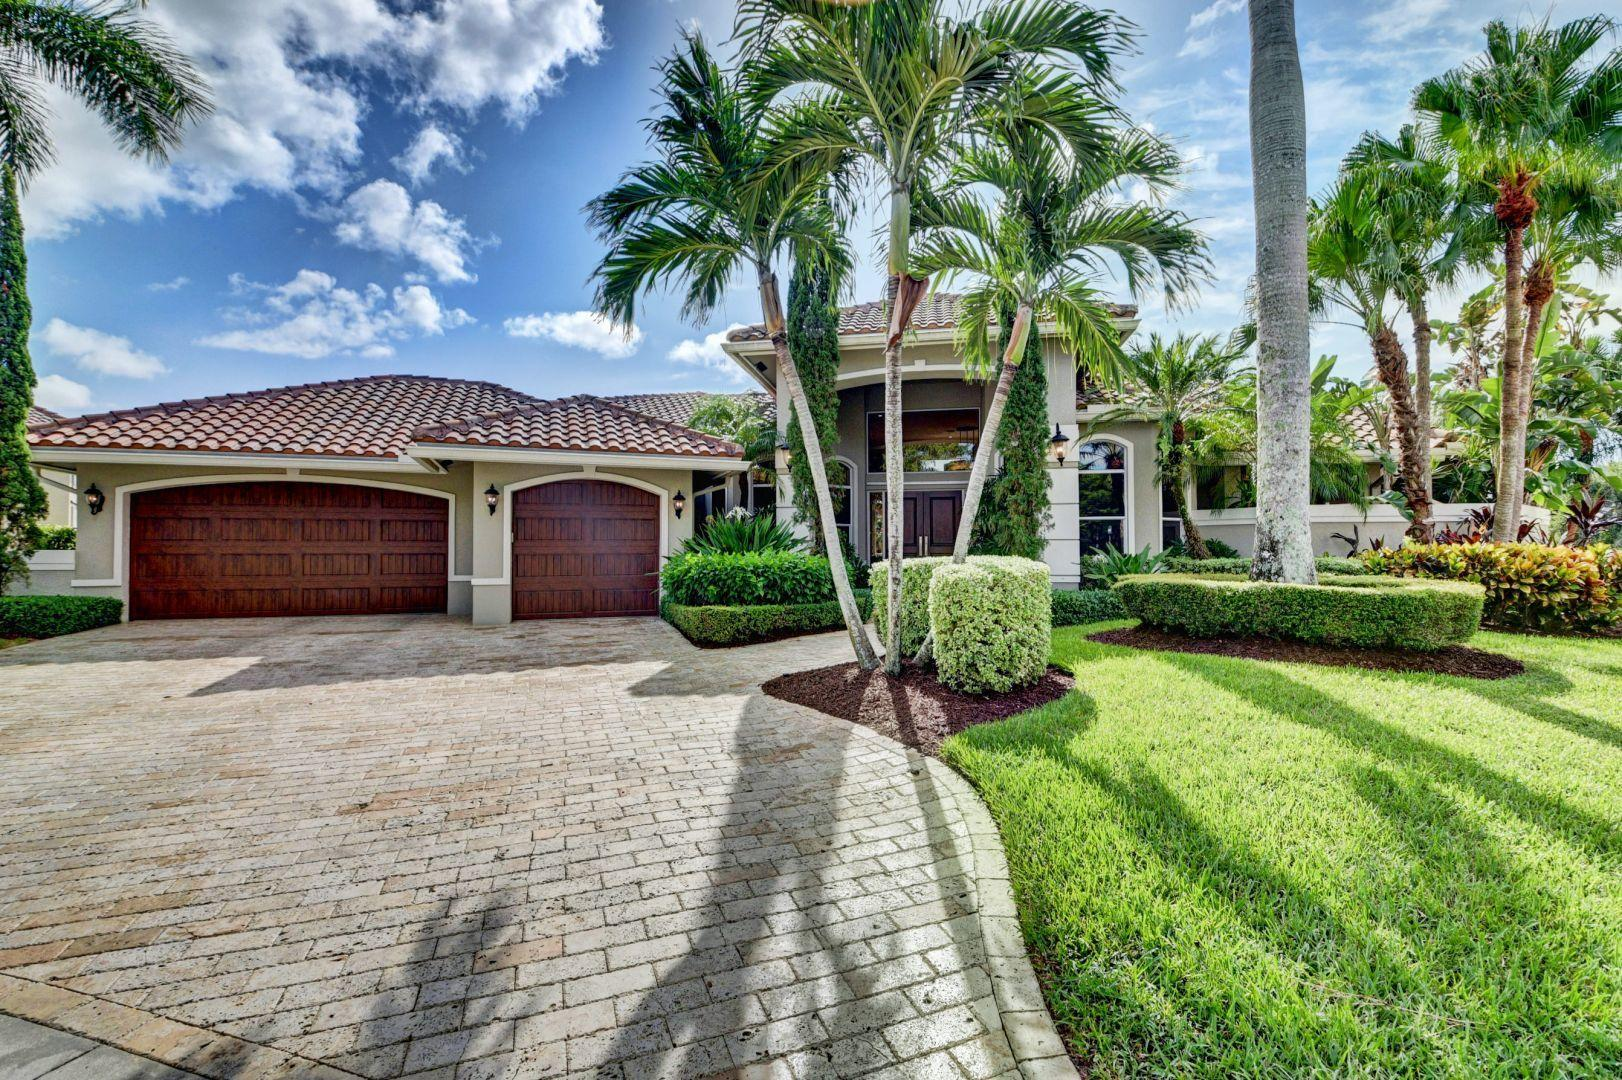 Photo of 3232 NW 62nd Lane, Boca Raton, FL 33496